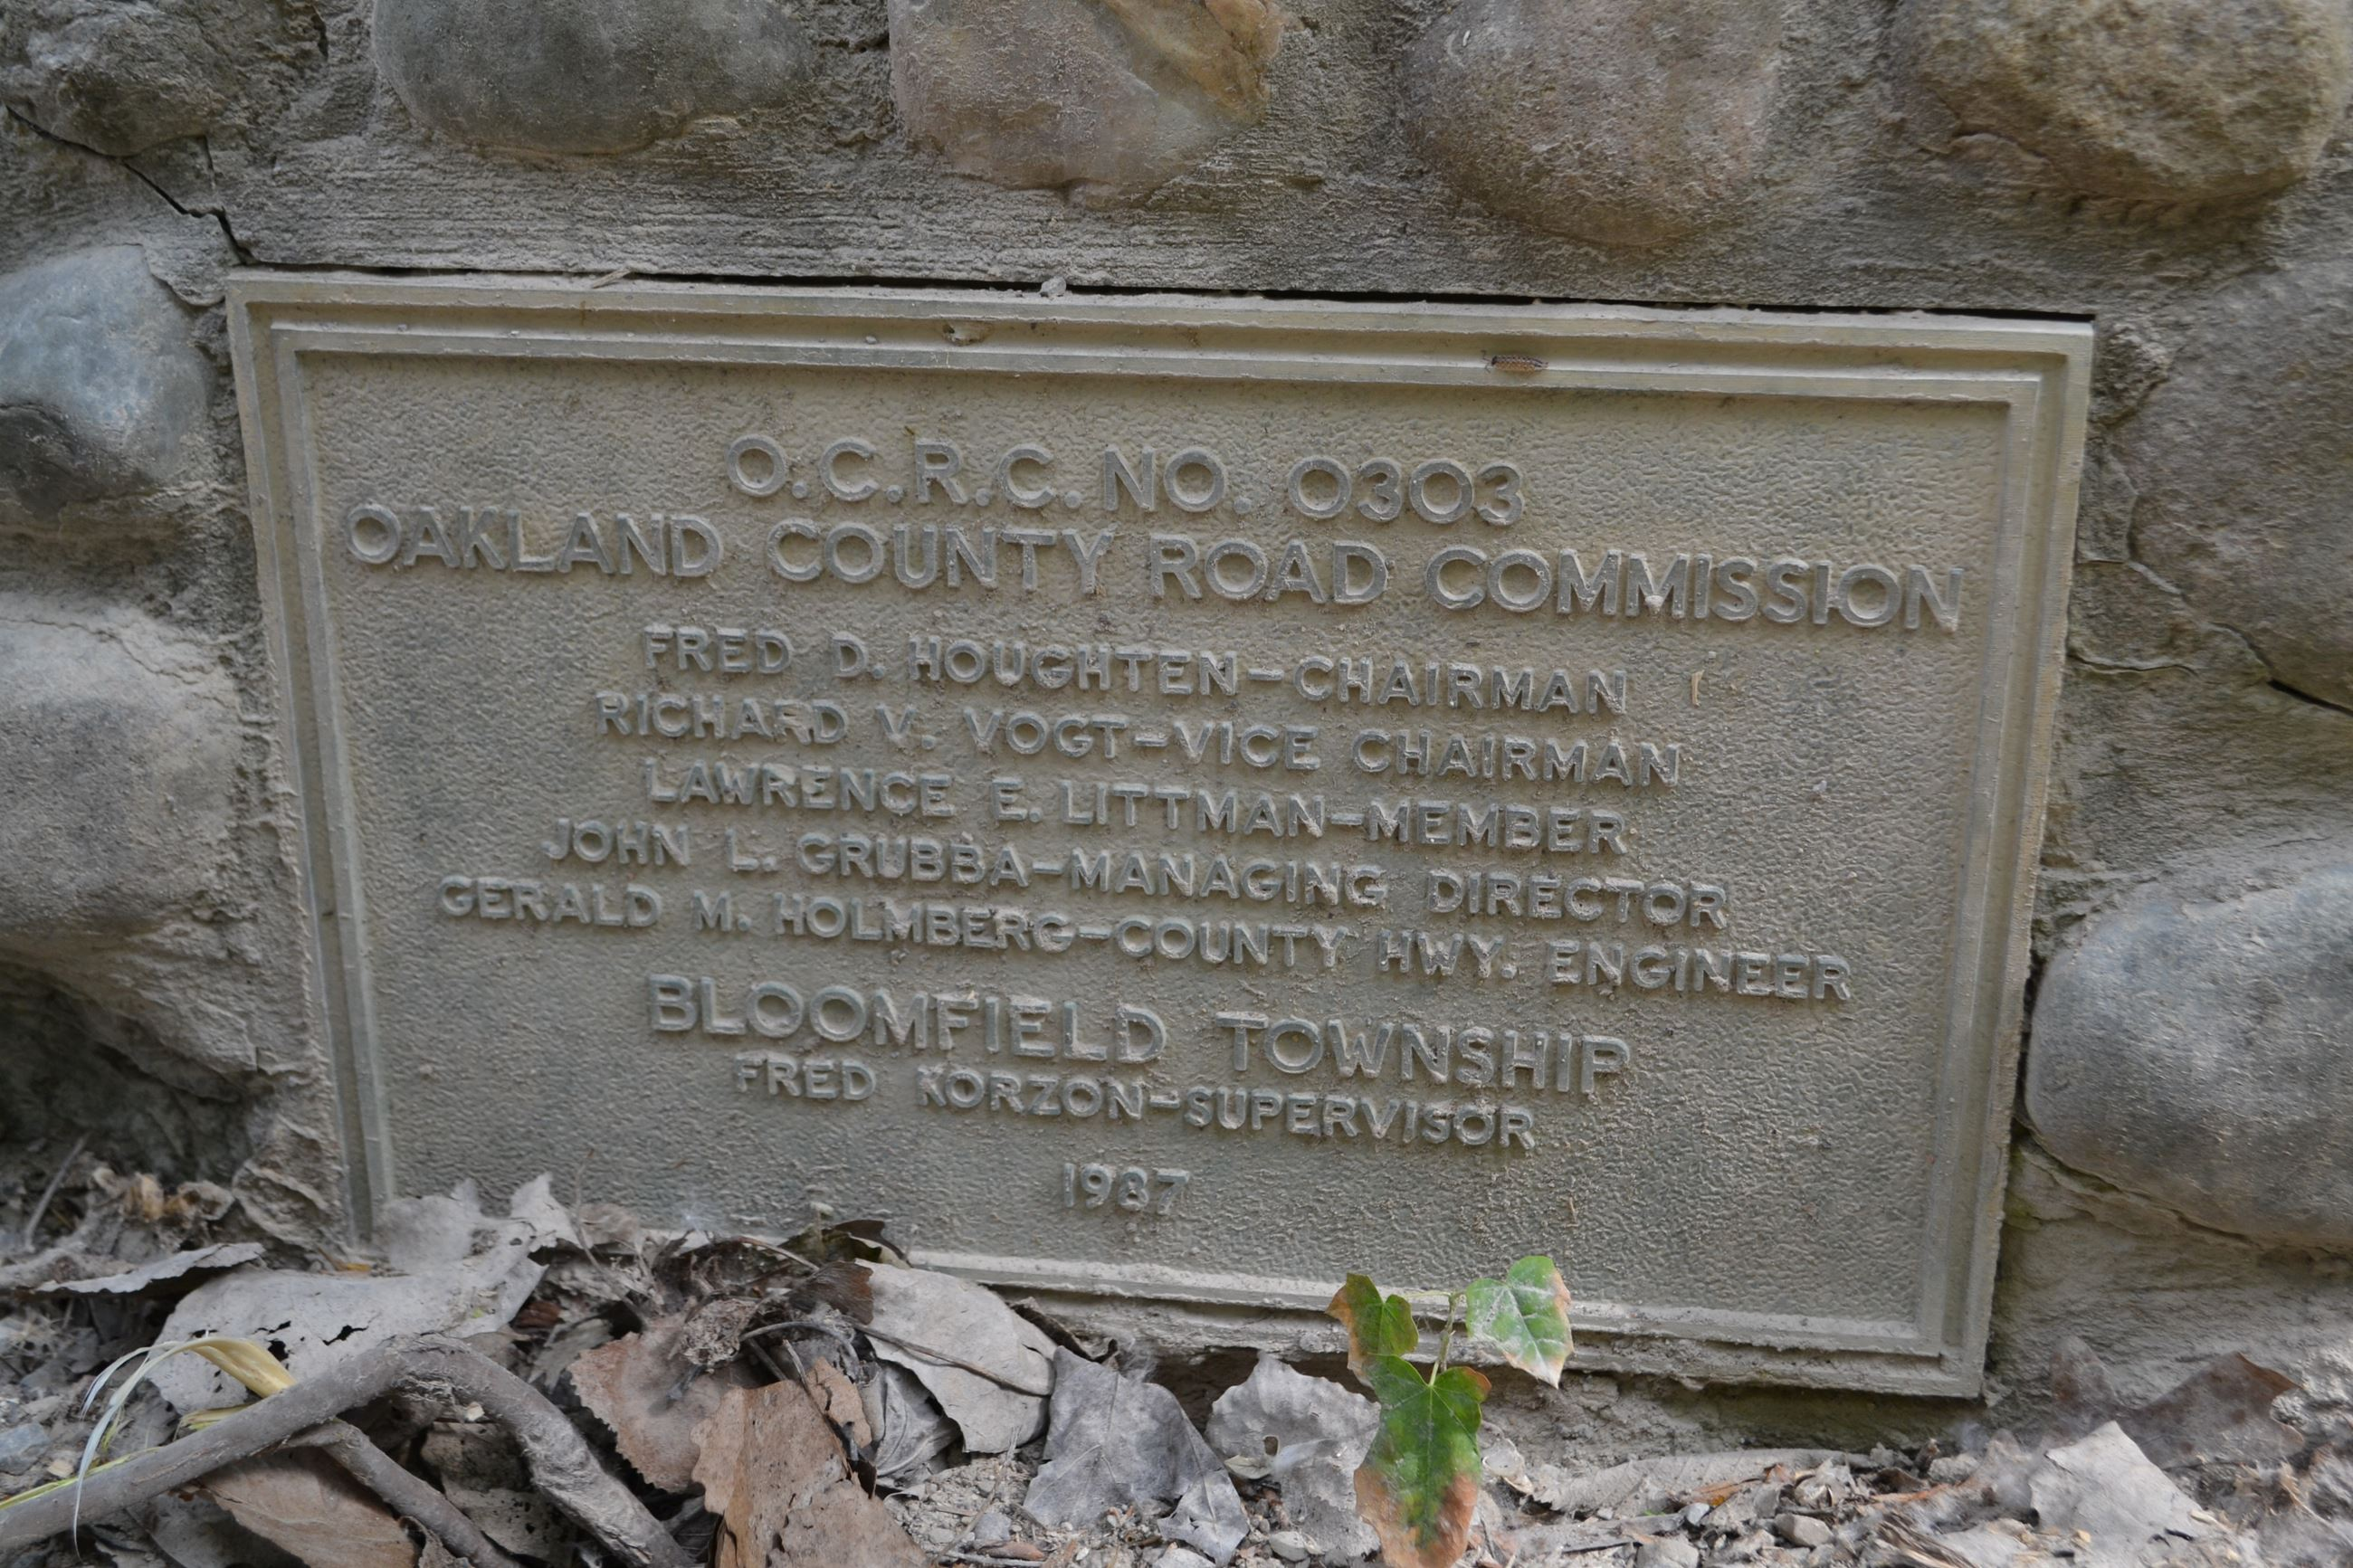 Manor Road Bridge, Bloomfield Twp (1967 dedication plaque)